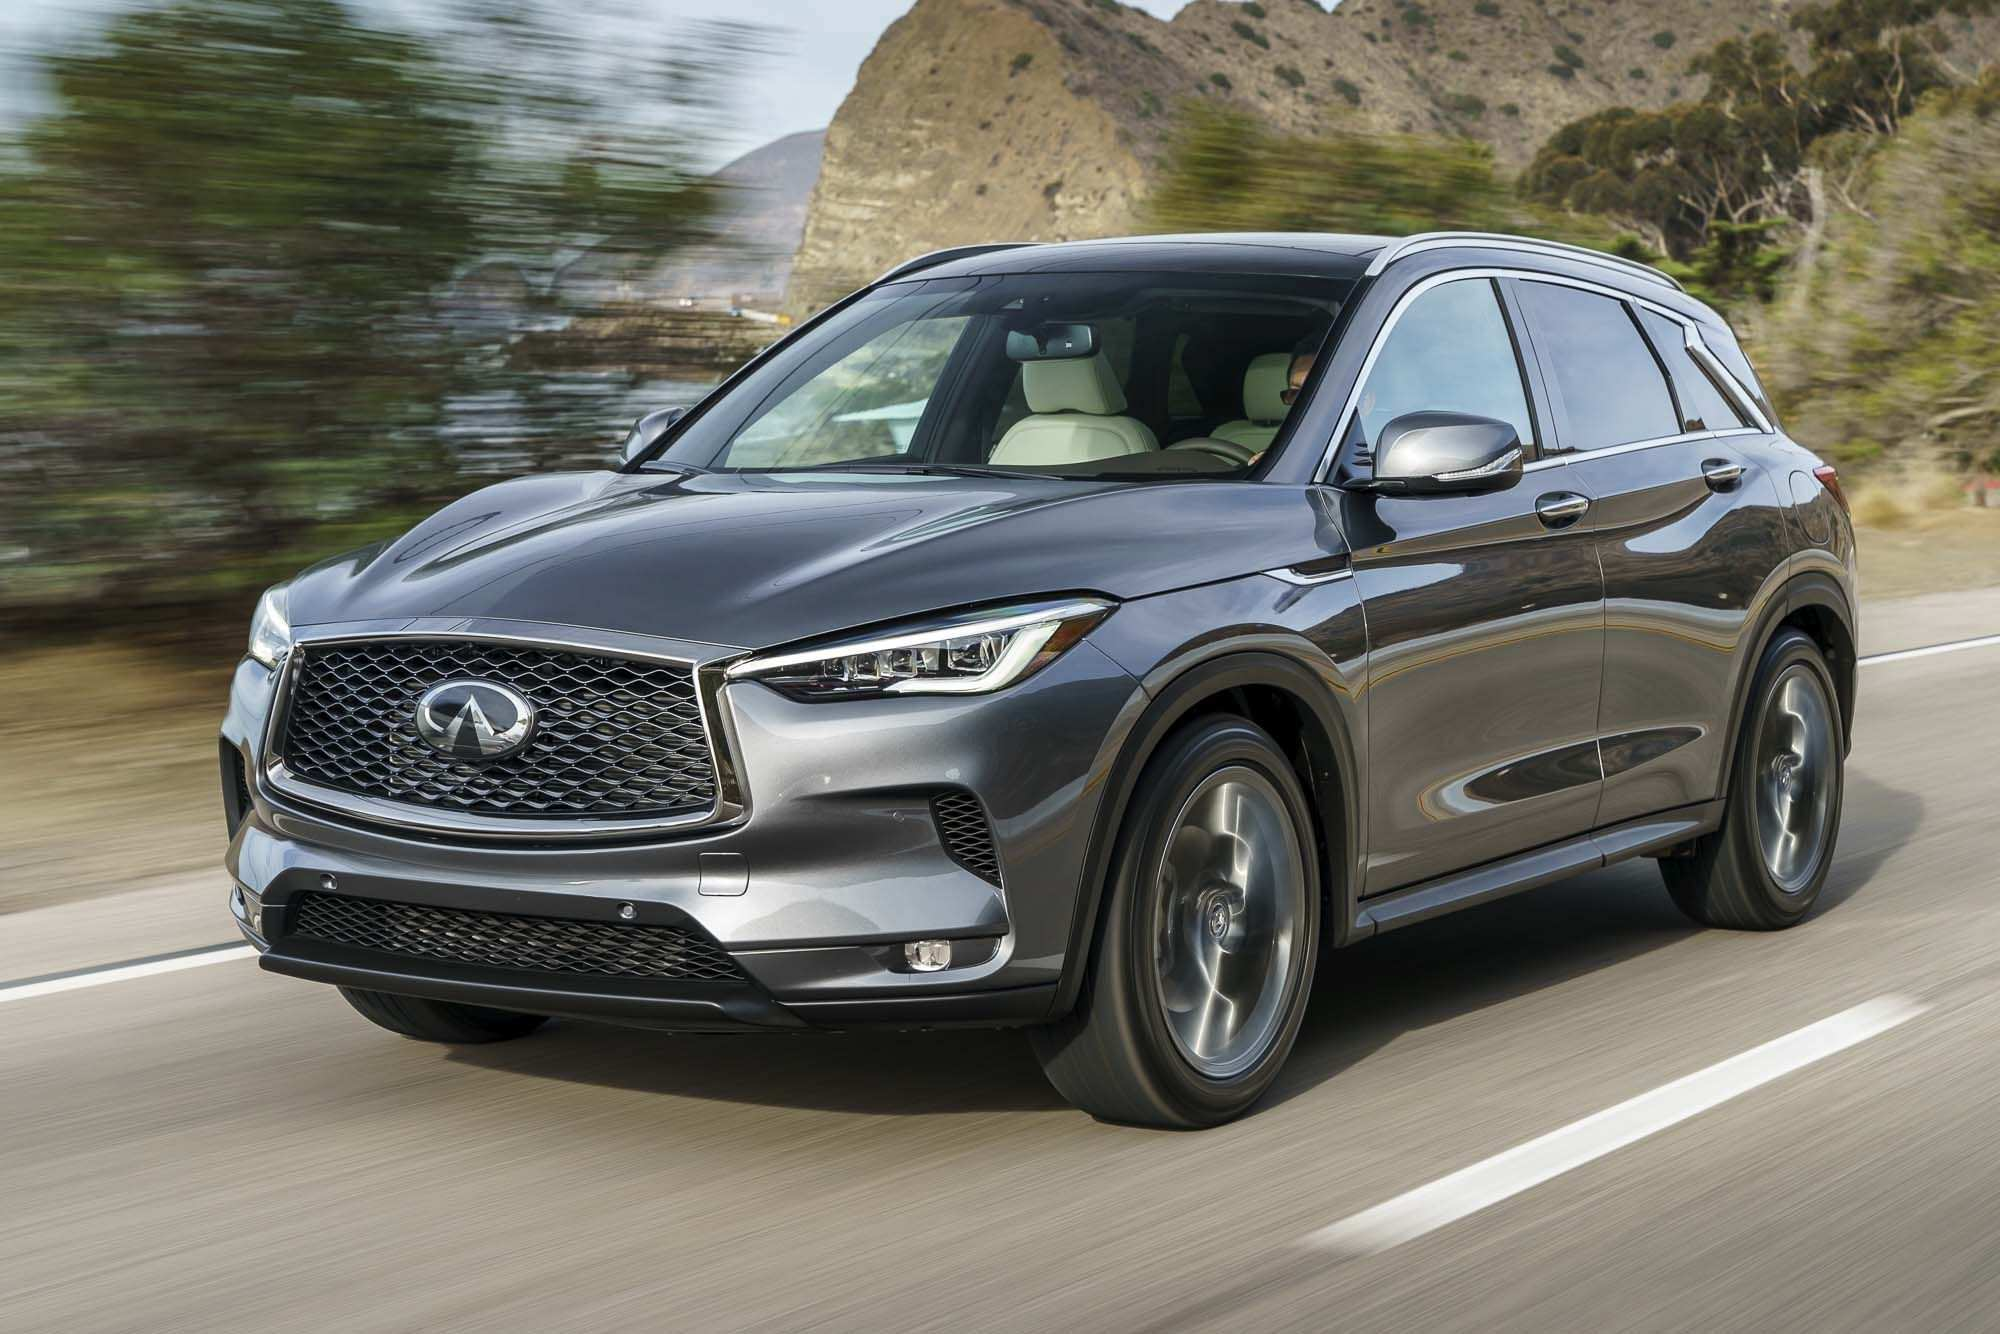 32 Concept of 2020 Infiniti Qx50 Luxe New Concept First Drive for 2020 Infiniti Qx50 Luxe New Concept